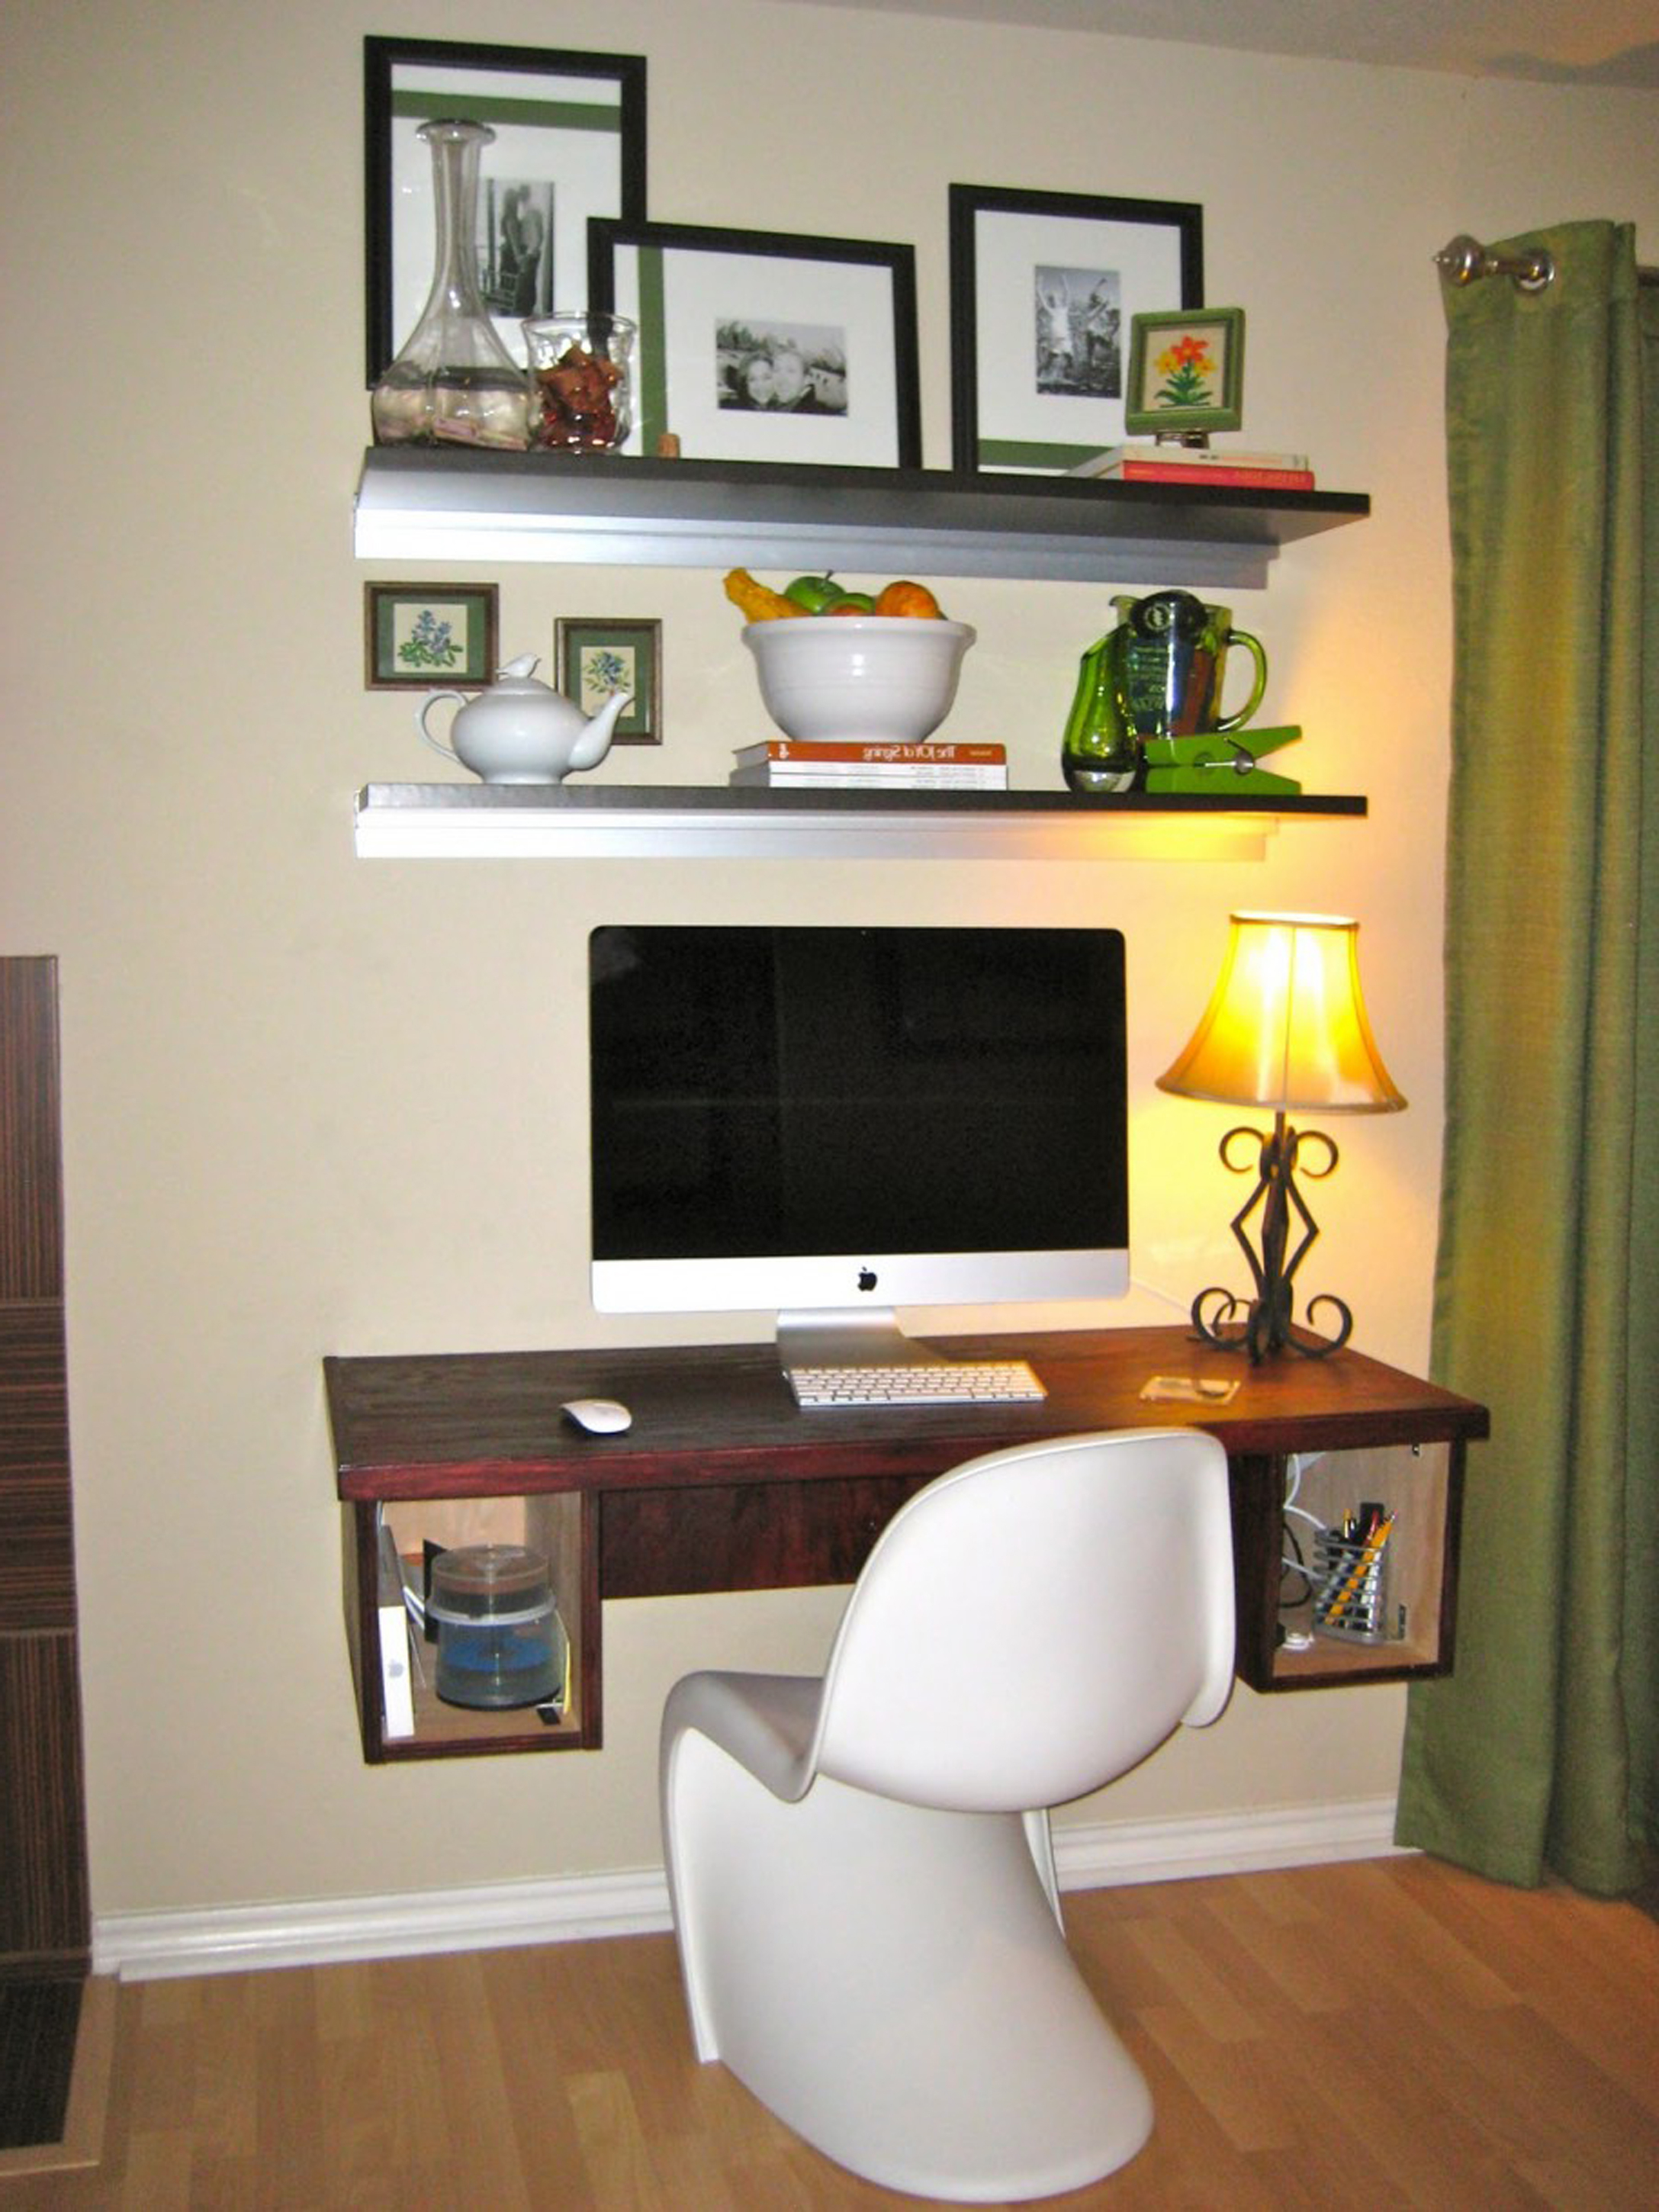 Minimalist Black Picture Frame Design Idea For Study Room With White Wall And Black Open Shelves Charming Picture Frame Design Ideas (Image 7 of 25)